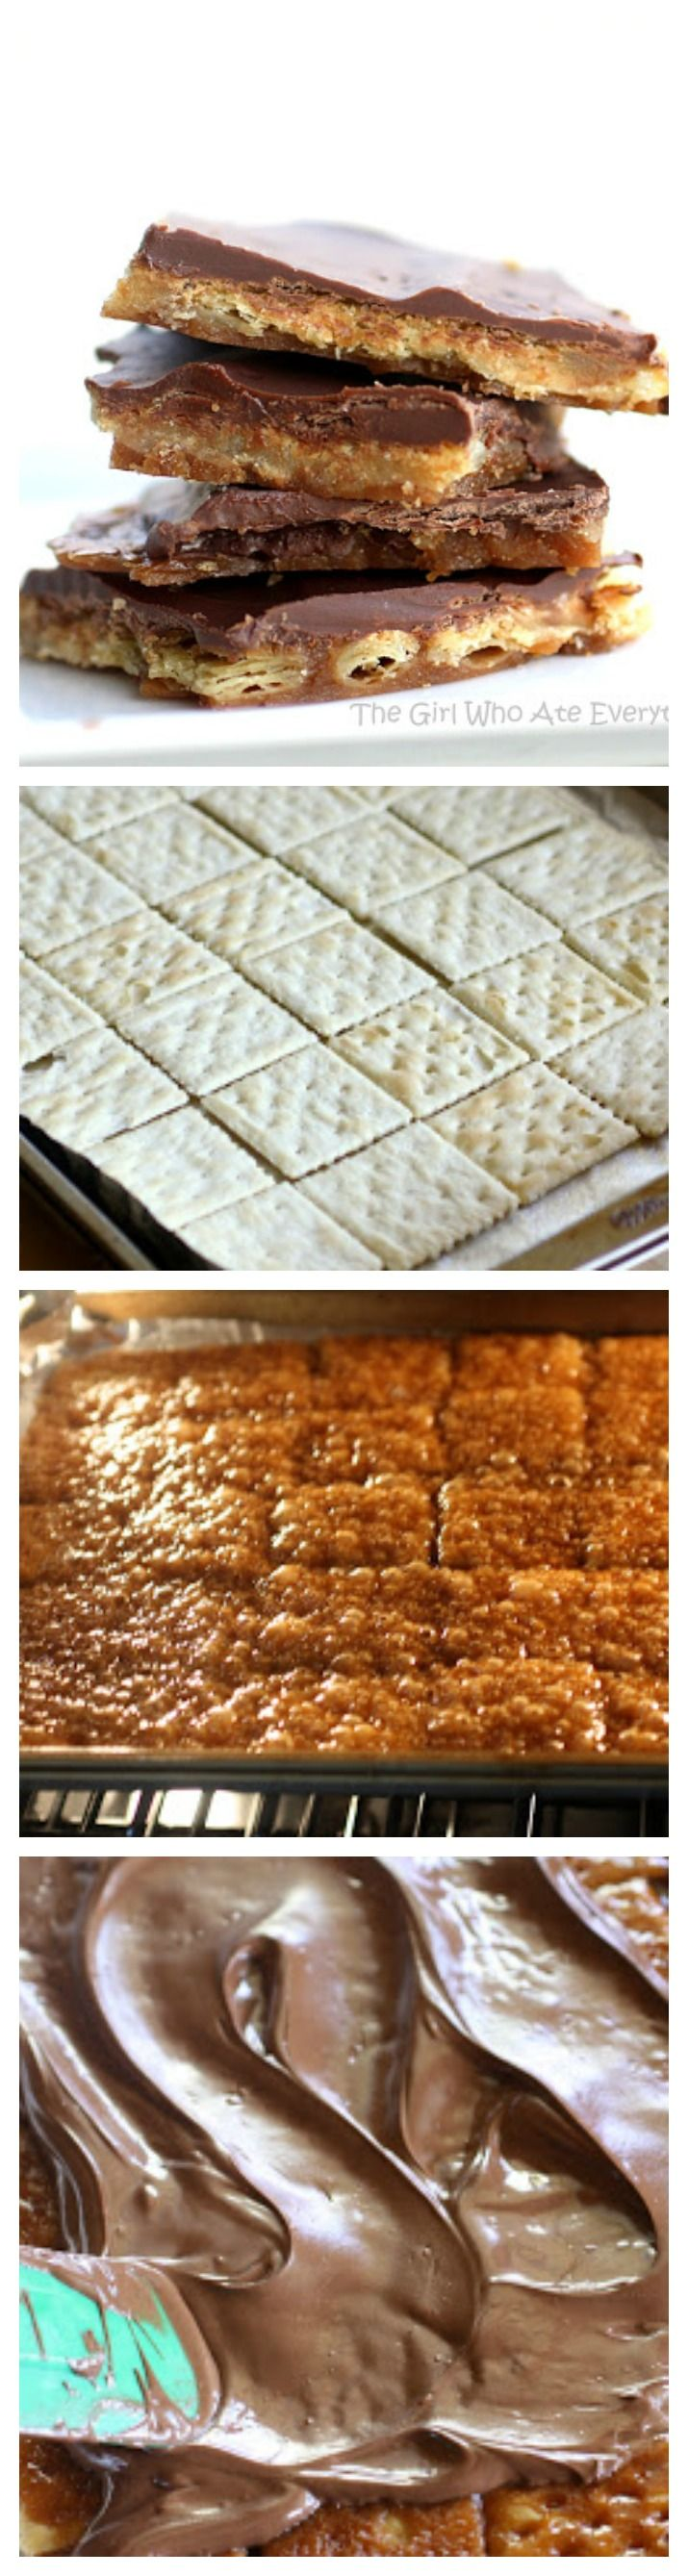 Saltine Cracker Toffee - a tried and true recipe my grandma used to make. Easy and so addicting.